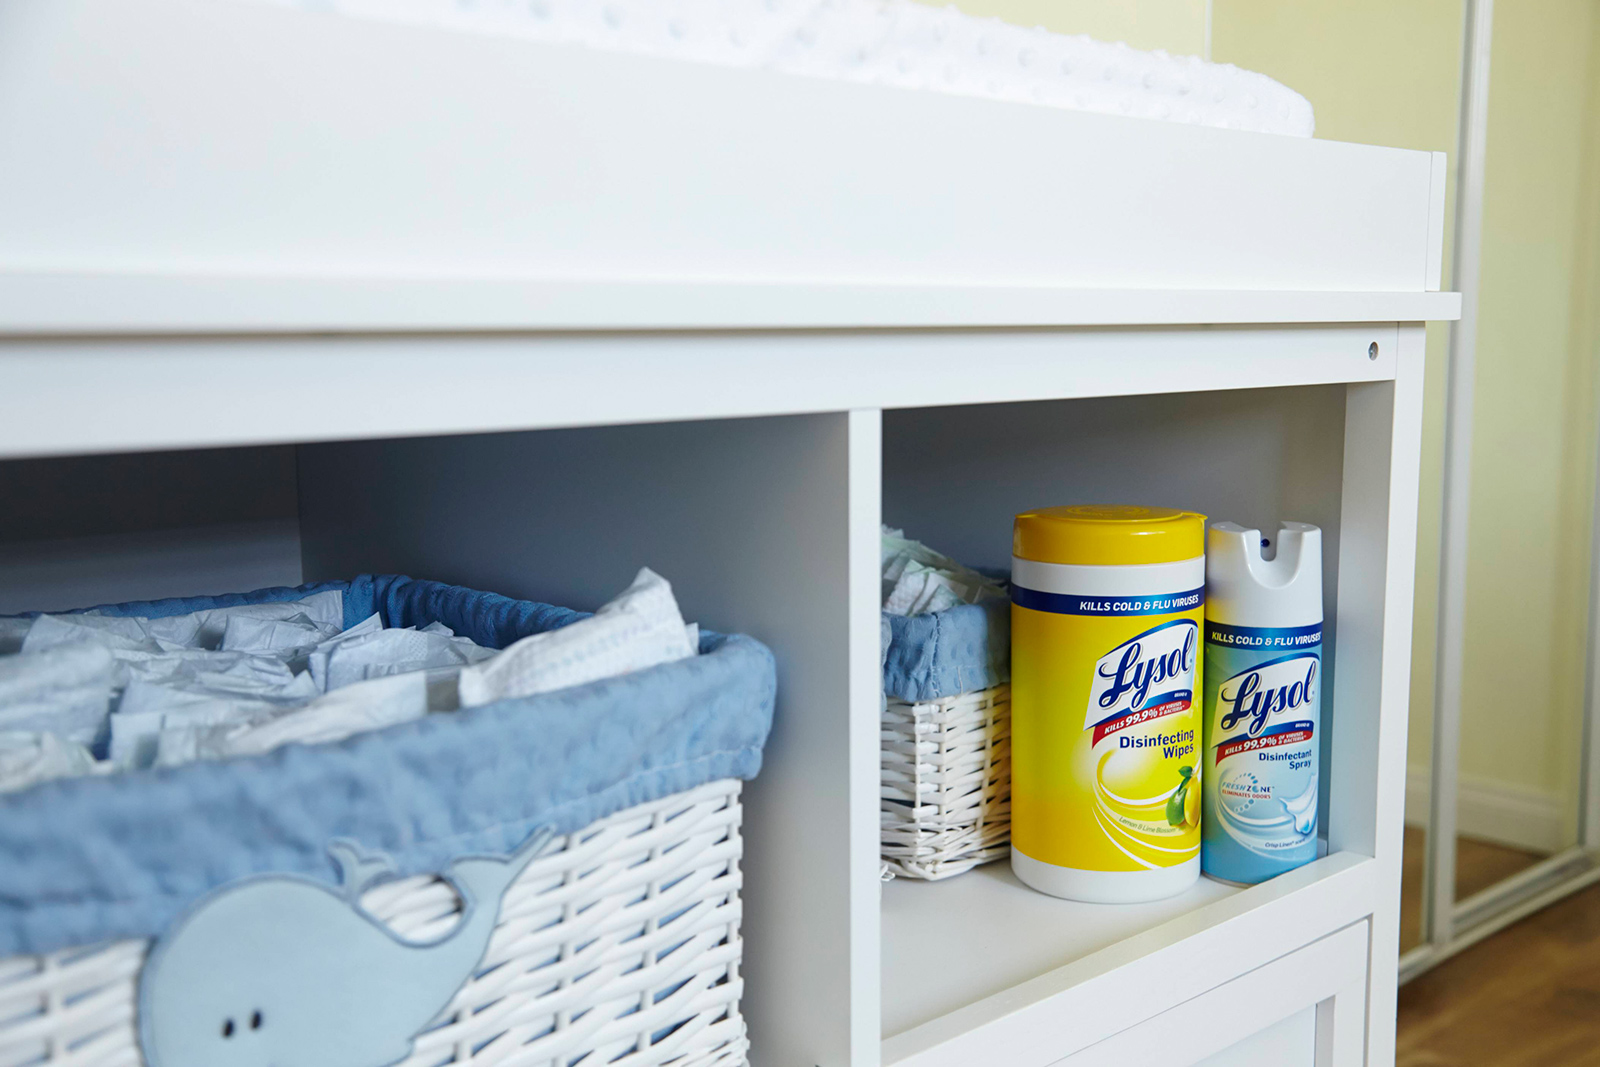 Cabinet with baskets containing diapers and canisters of Lysol Disinfecting Wipes and Lysol Disinfectant Spray